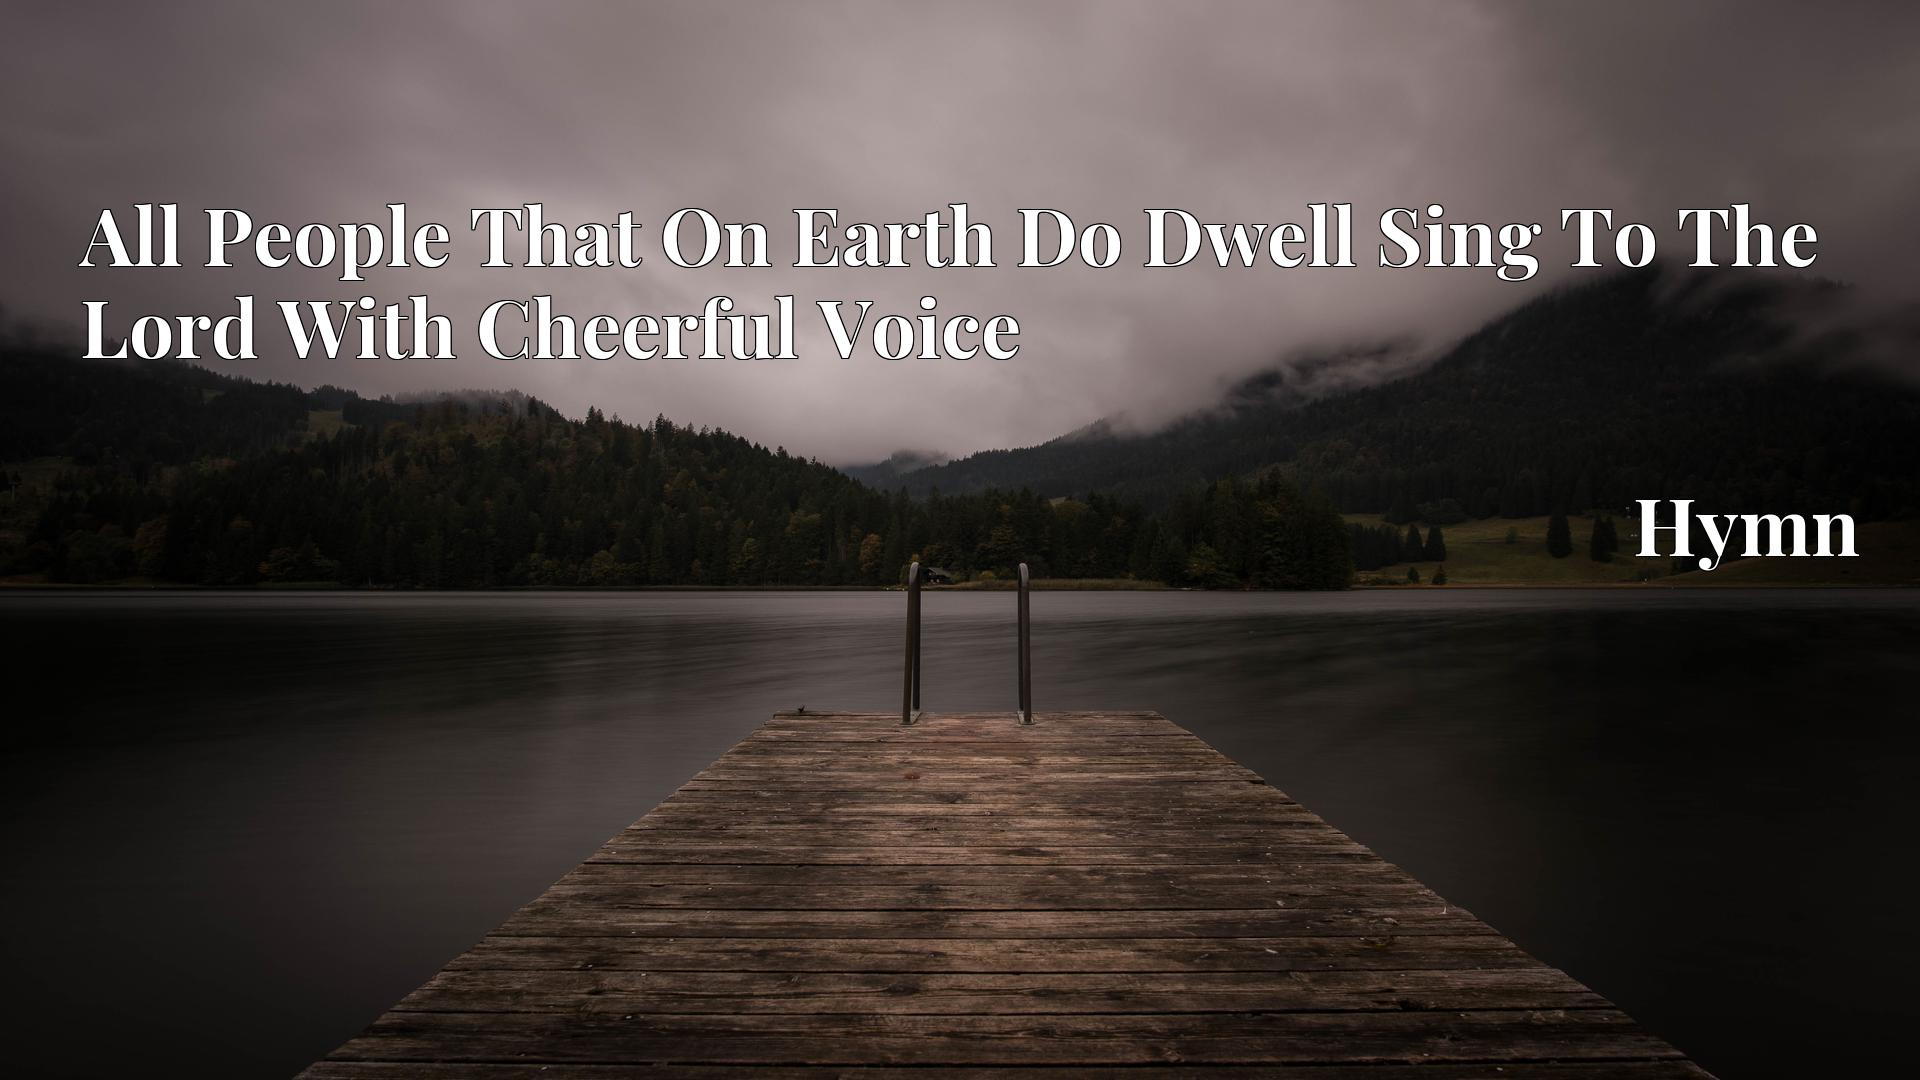 All People That On Earth Do Dwell Sing To The Lord With Cheerful Voice - Hymn